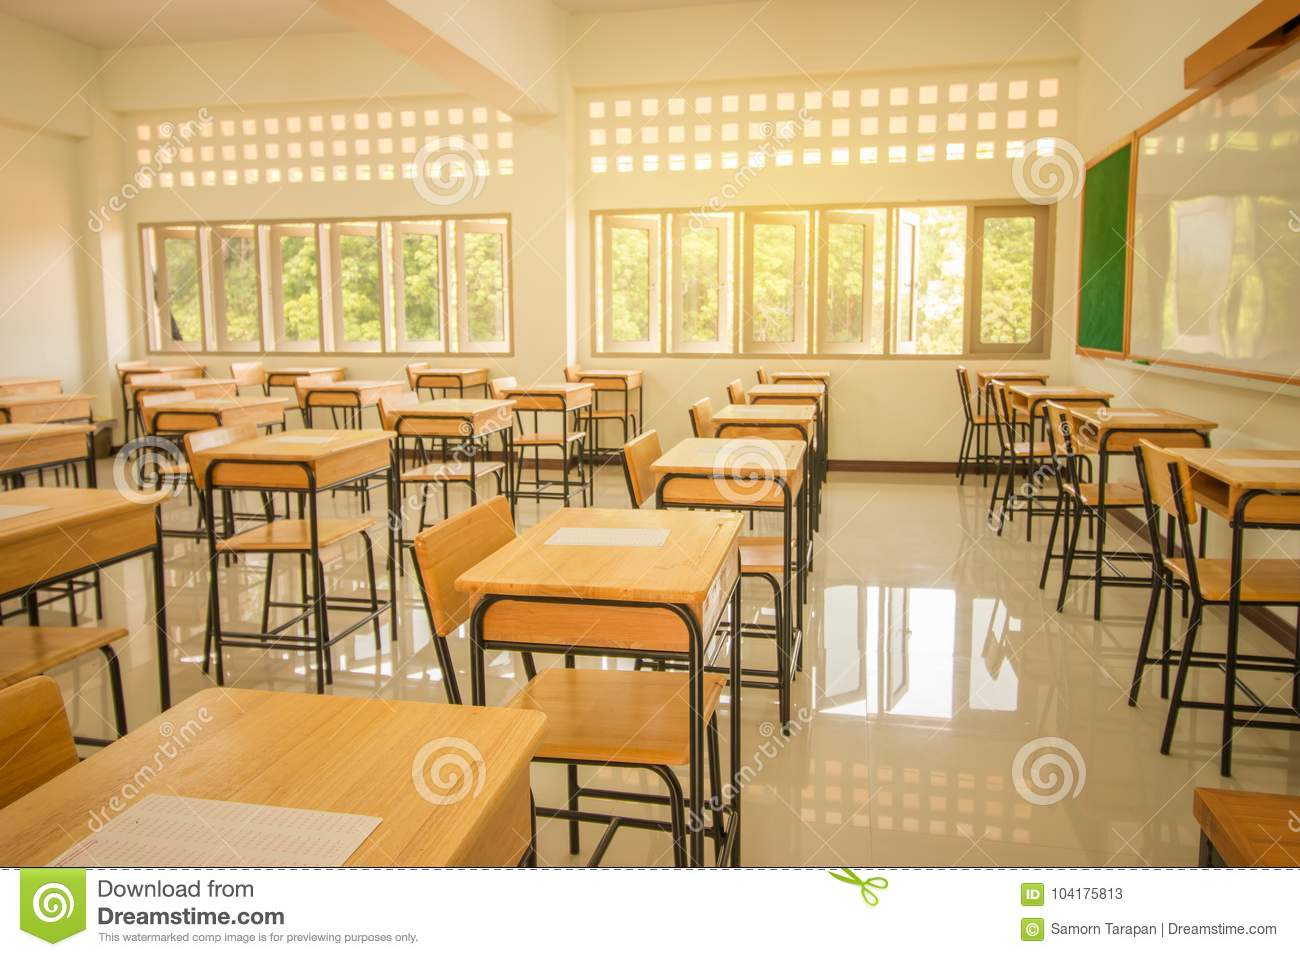 Lecture room or School empty classroom with desks and chair iron